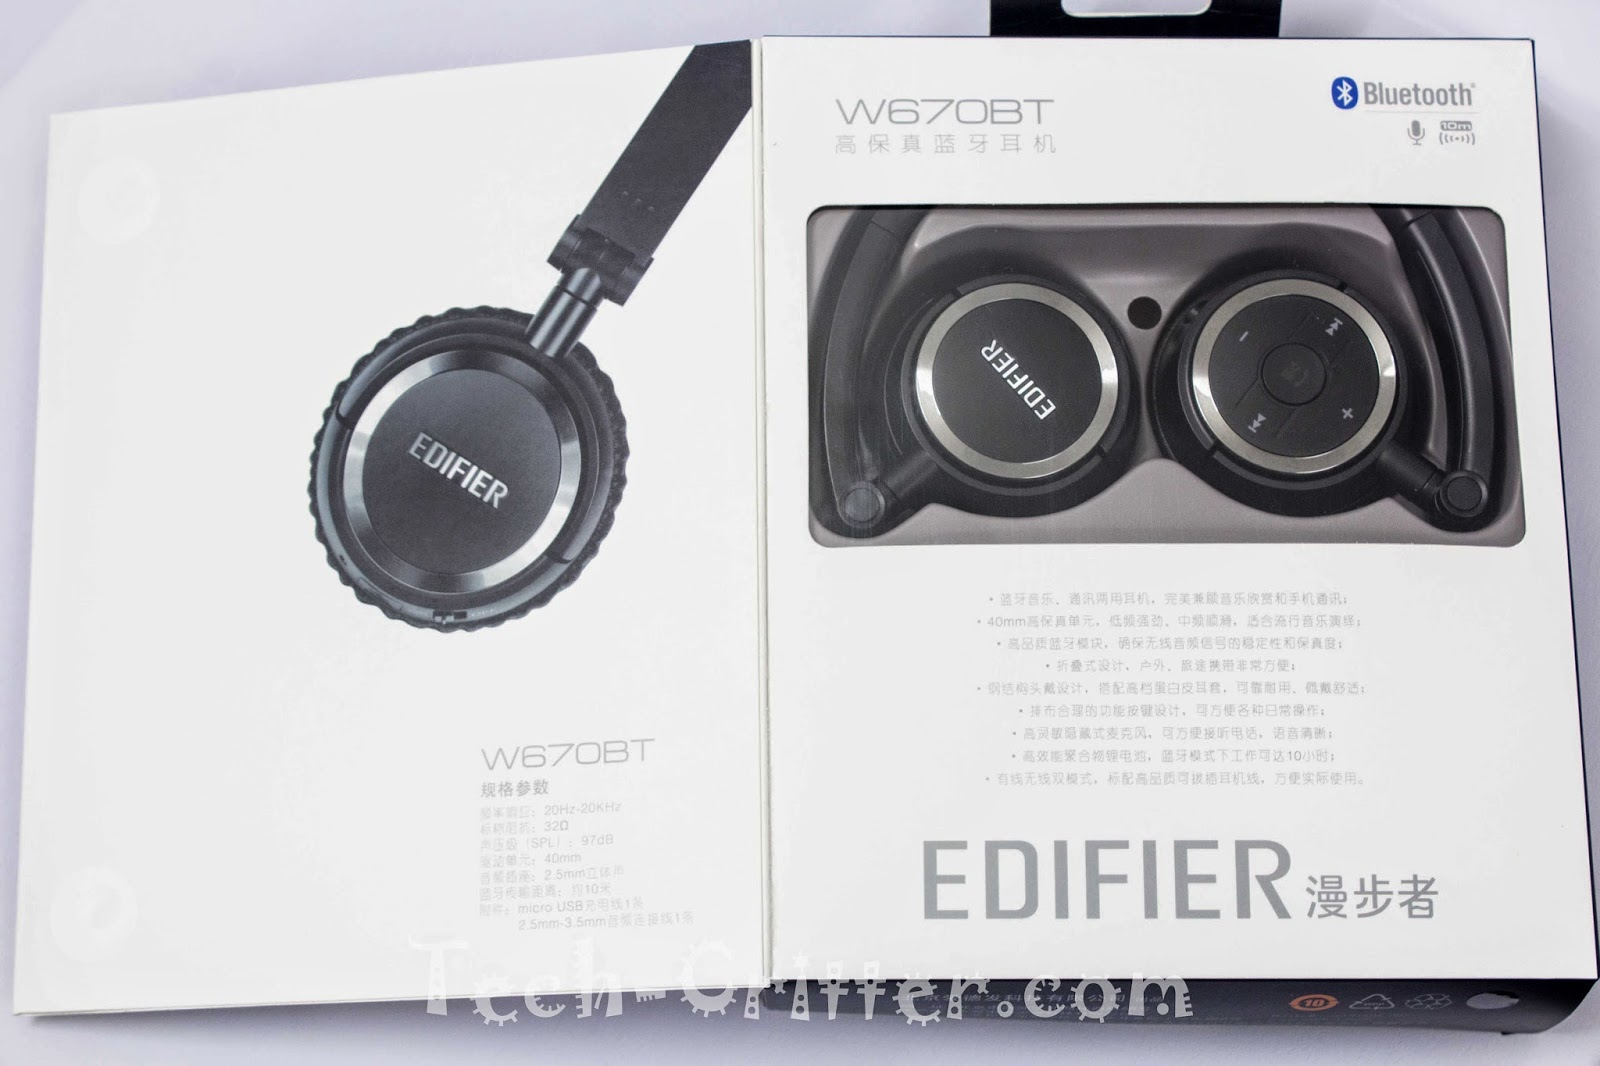 Unboxing & Review: Edifier W670BT Stereo Bluetooth Headset 37